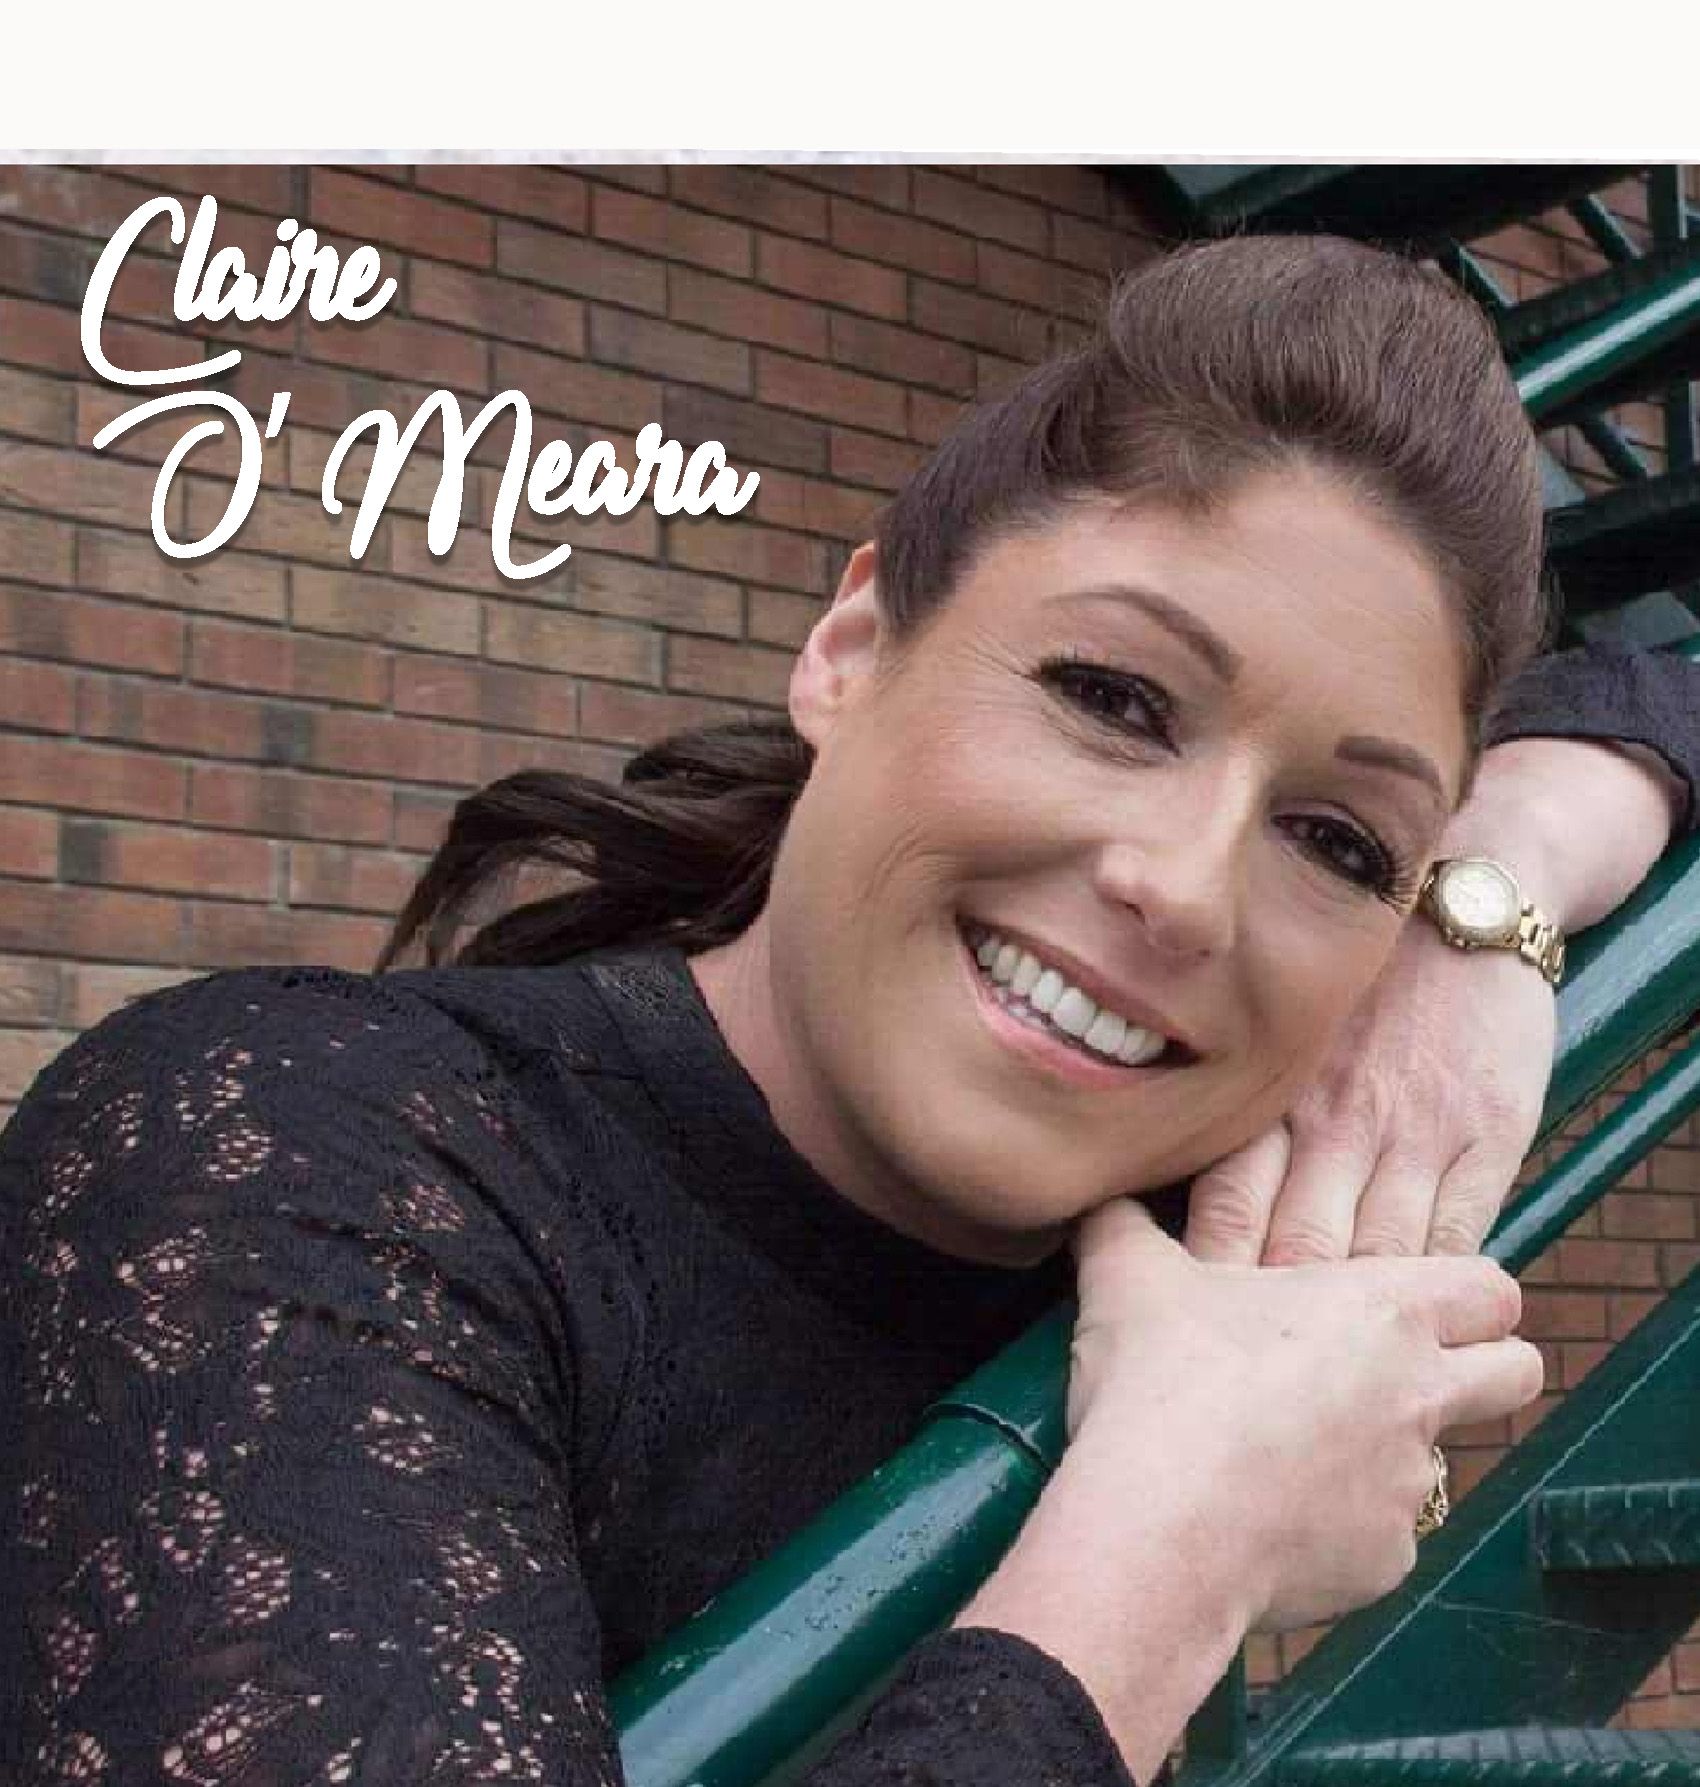 IRELAND  Claire has had a passion for Latin Afro dance since she lived in South Florida for 10 years. She has been a keen Latin dancer for over 20 years, but since discovering Kizomba and Semba nearly 5 years ago it captured her heart. Claire regularly travels to Lisbon to learn and share her passion and her home soil. She trains in great length with Mestre Petchu and Tomas Keita to name a few. She teaches weekly classes in Kizomba/Semba/Afro dance in Ennis. She works extensively with youth groups and local events, recently choreographing producing and teaching Strictly come dancing in Ennis for loca GAA club Eire. Claire hosts regular dance events in her town and workshops and is teaching abroad in festivals. Ireland  Where to find me?   facebook.com/pg/kizombaclaire/posts/?ref=page_internal